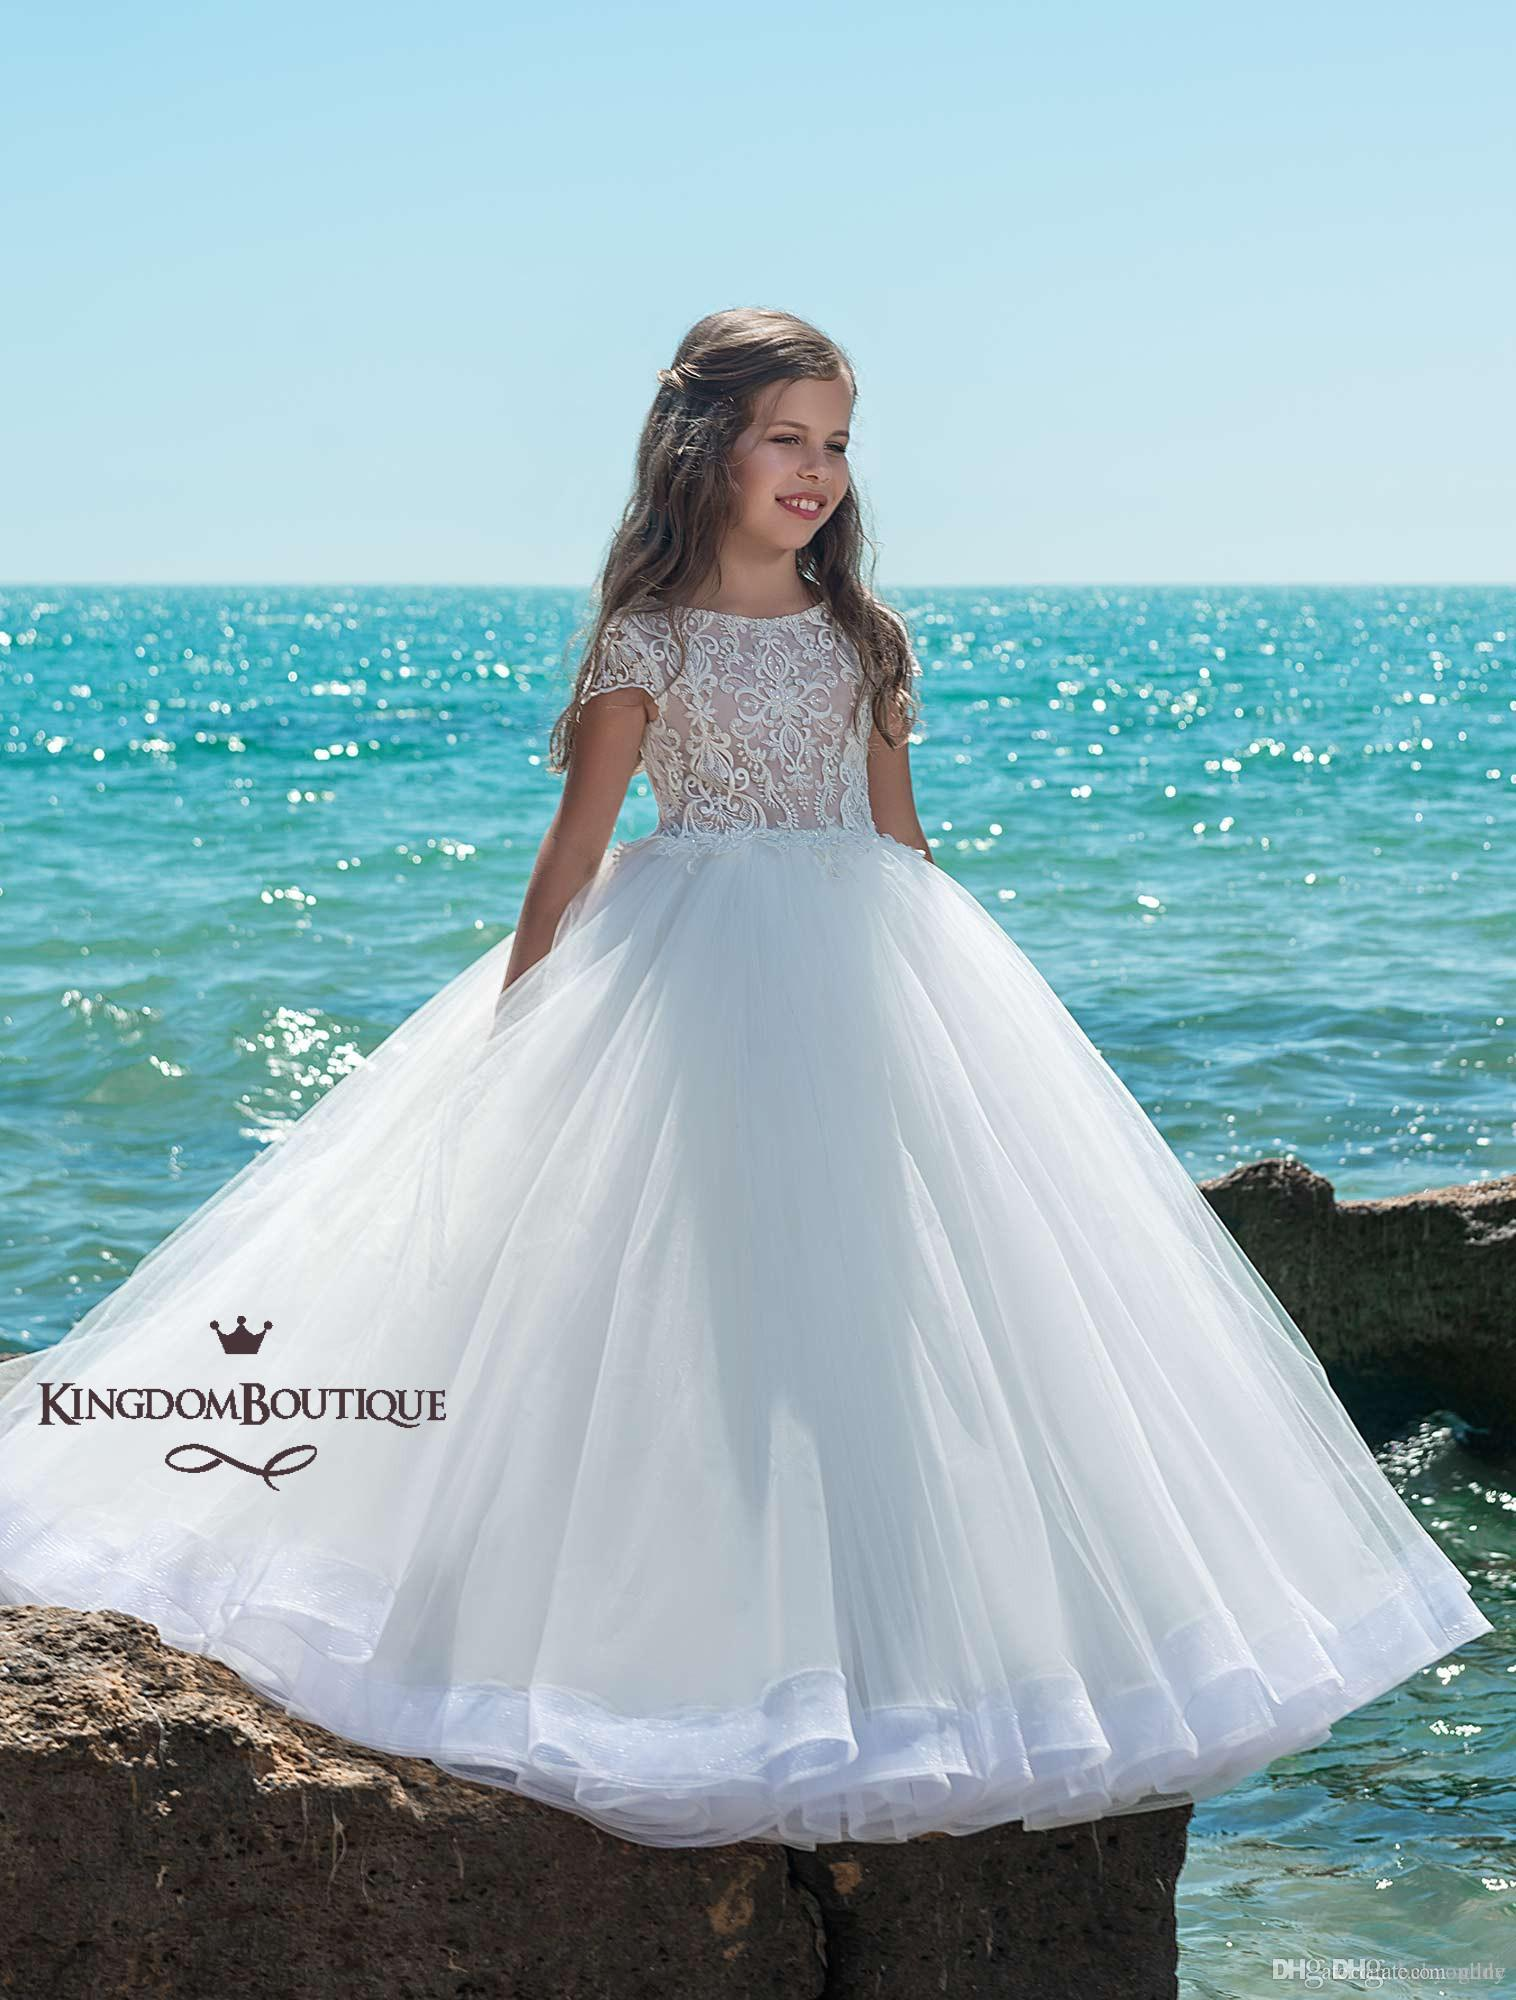 Tiered Beach Flower Girl Dresses A Line Jewel Cap Sleeve Sweep Train Girls Pageant Dresses With Lace Applique Beads For Wedding Party